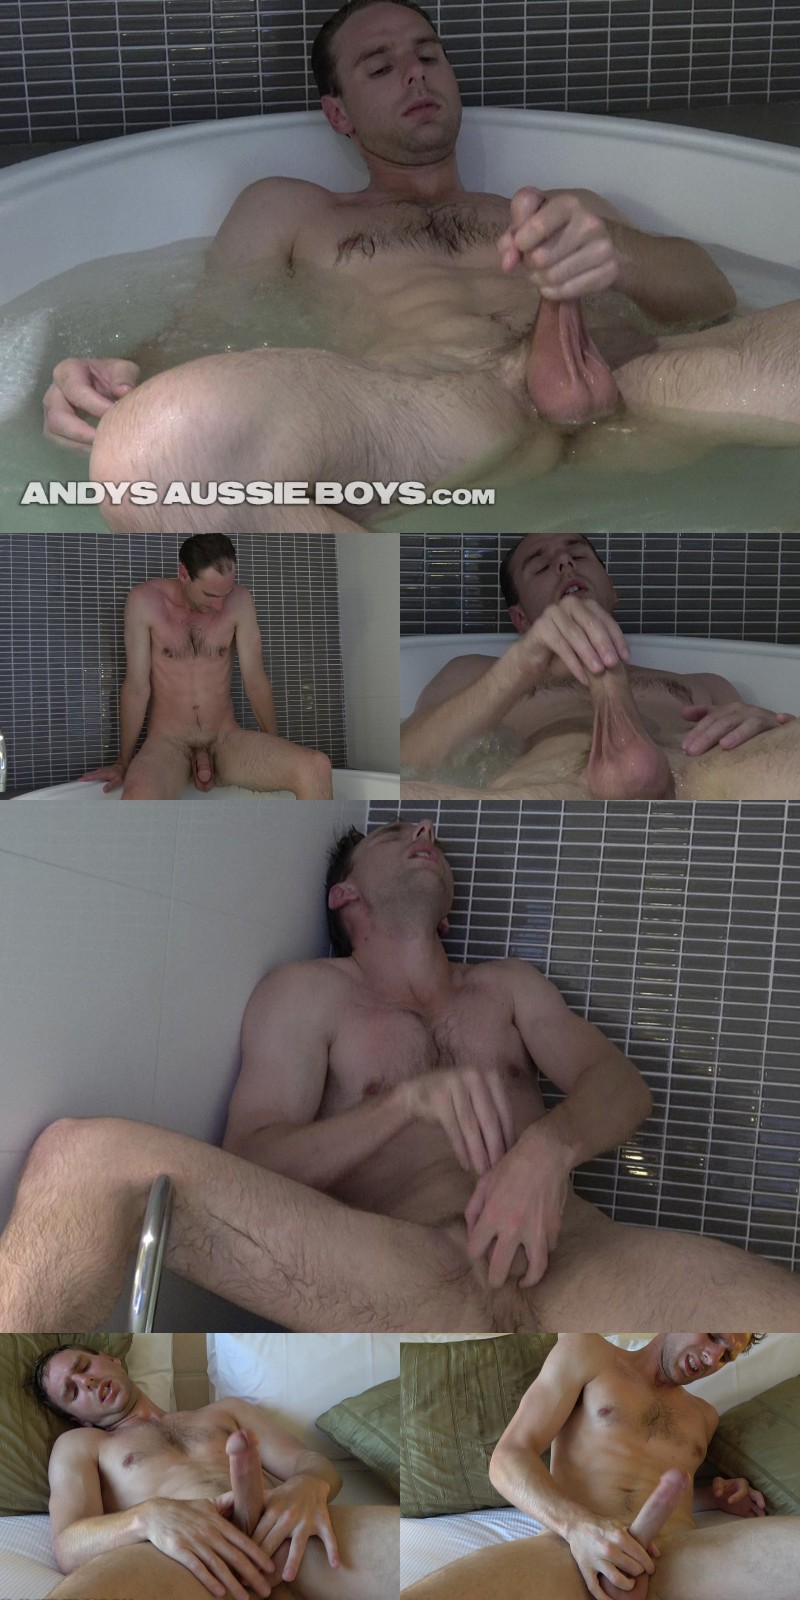 Hung Aussie & His Unique Jack-Off Technique